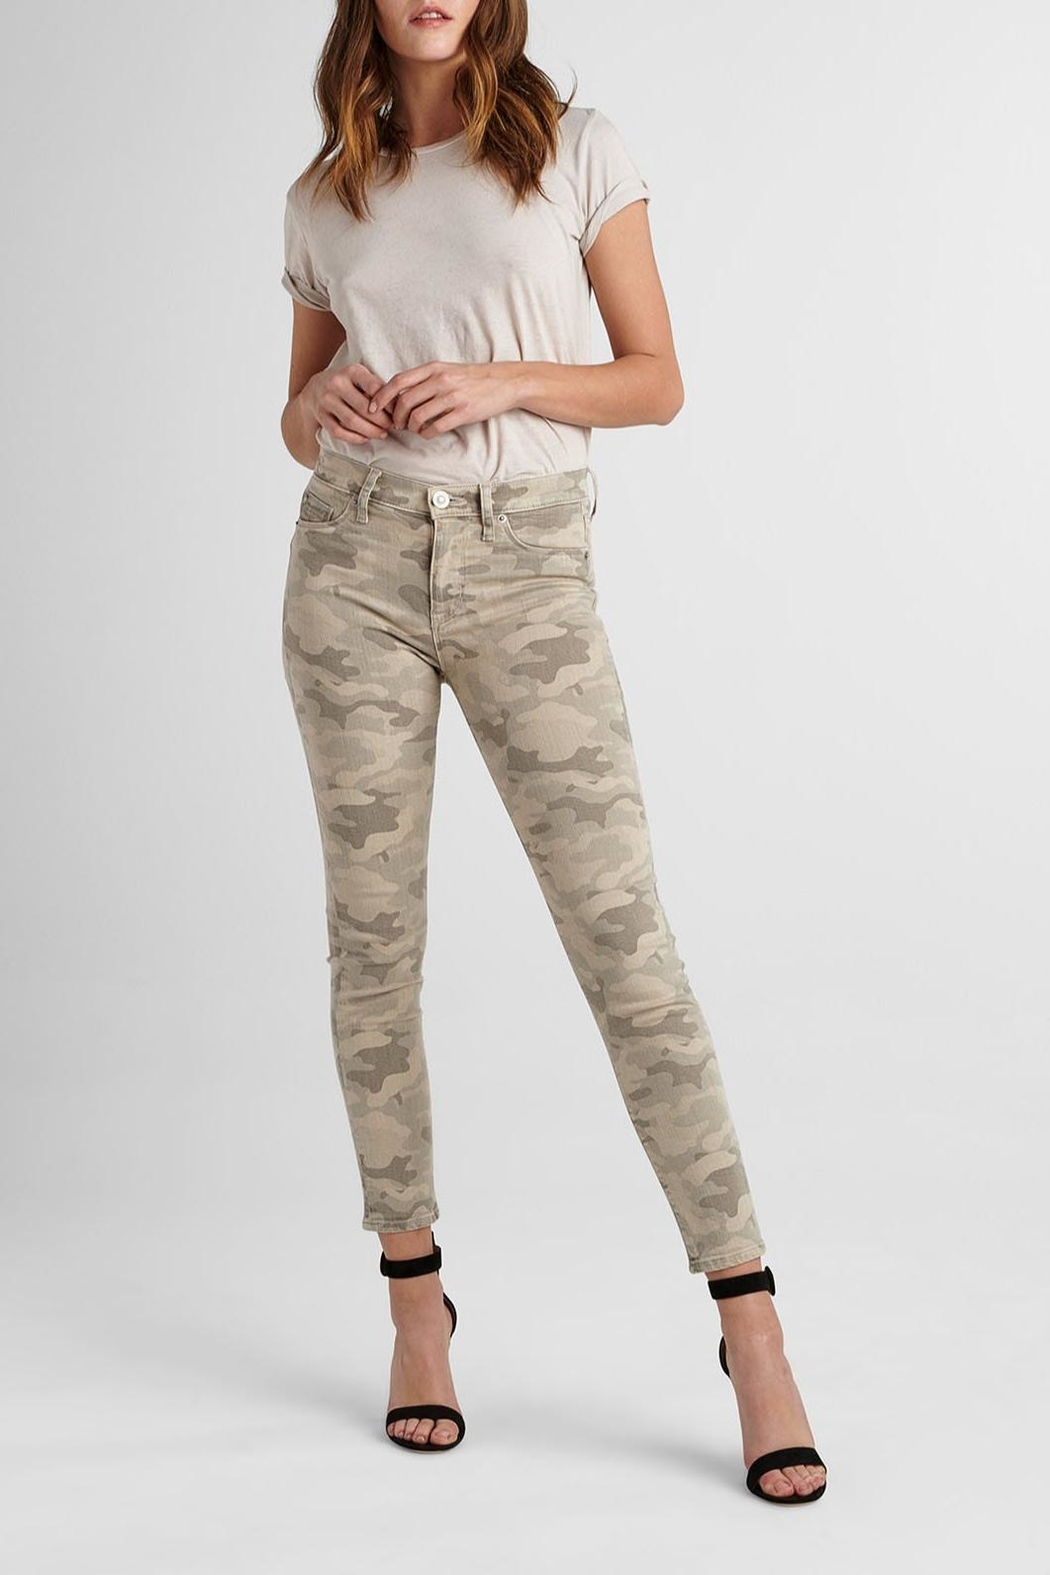 Hudson Jeans Army Camo Ankle-Skinny - Main Image